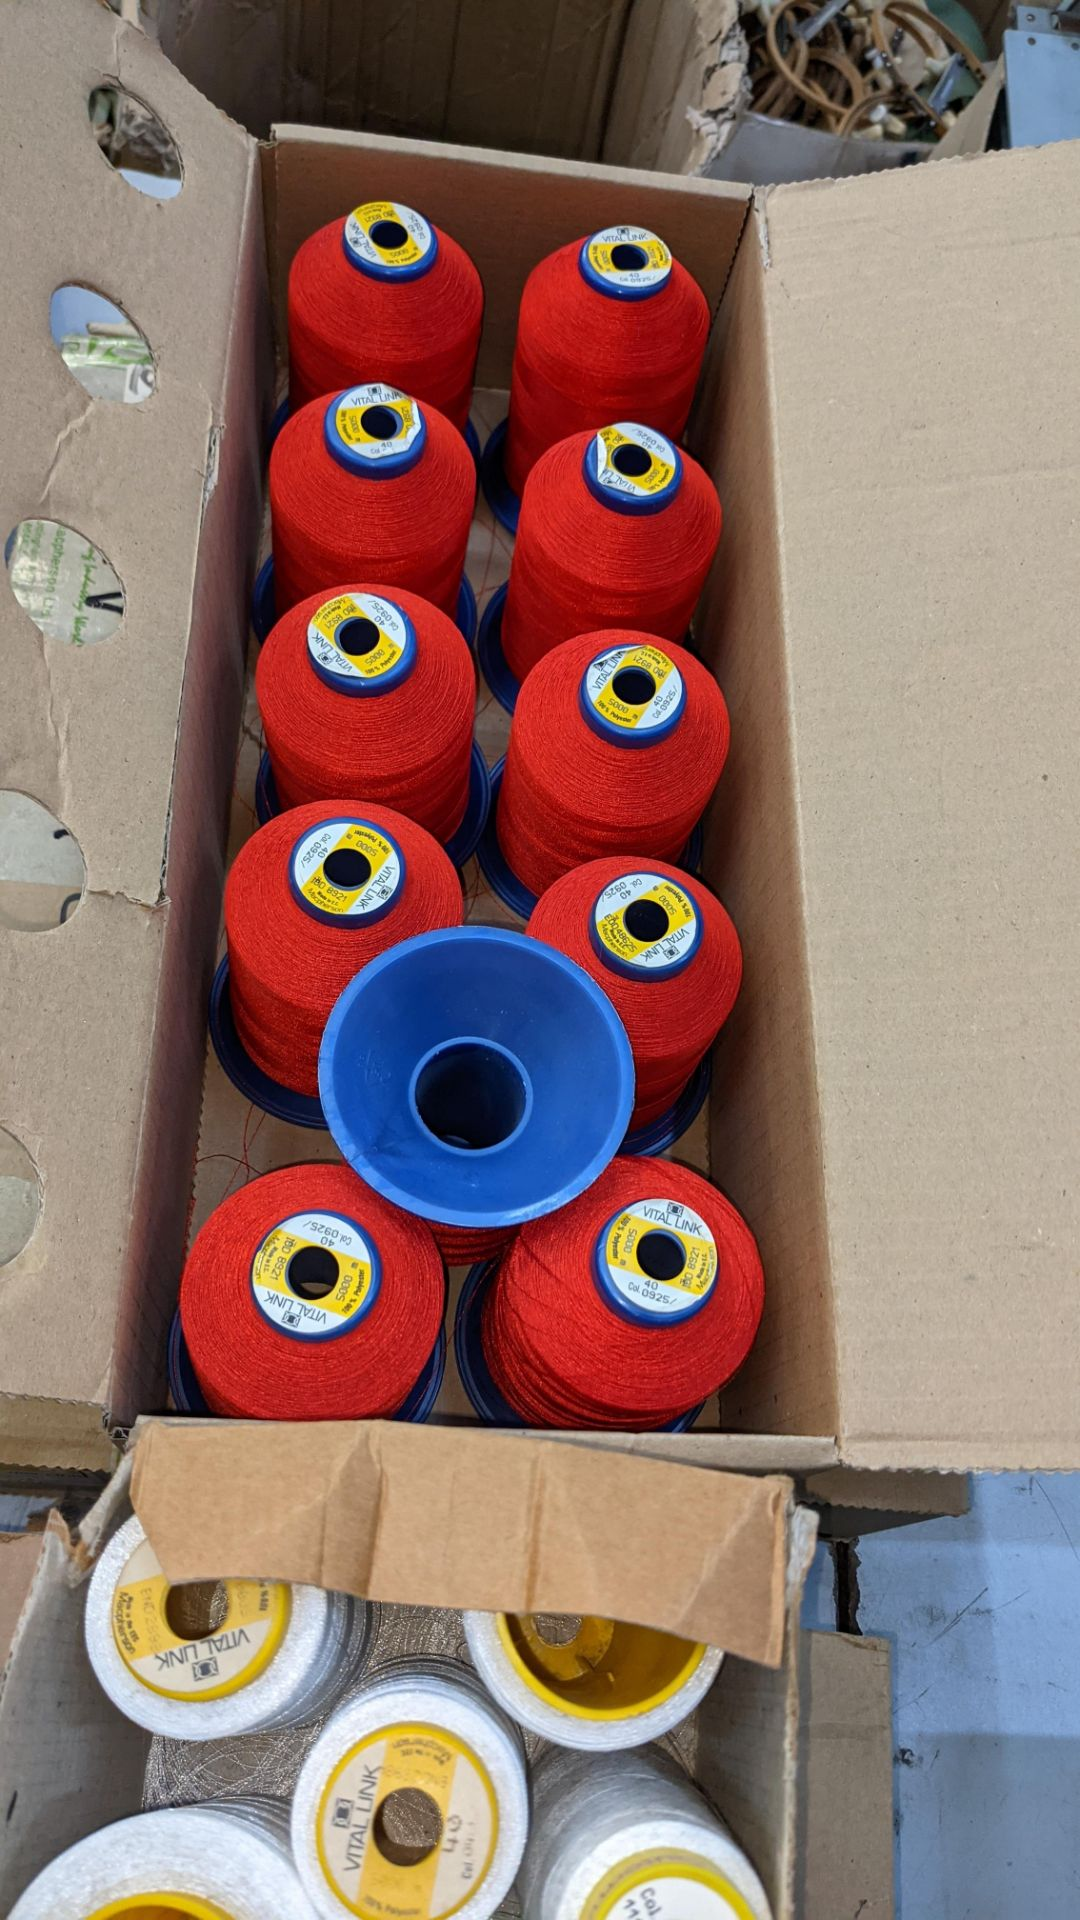 6 boxes of The Vital Link polyester embroidery thread - Image 5 of 7